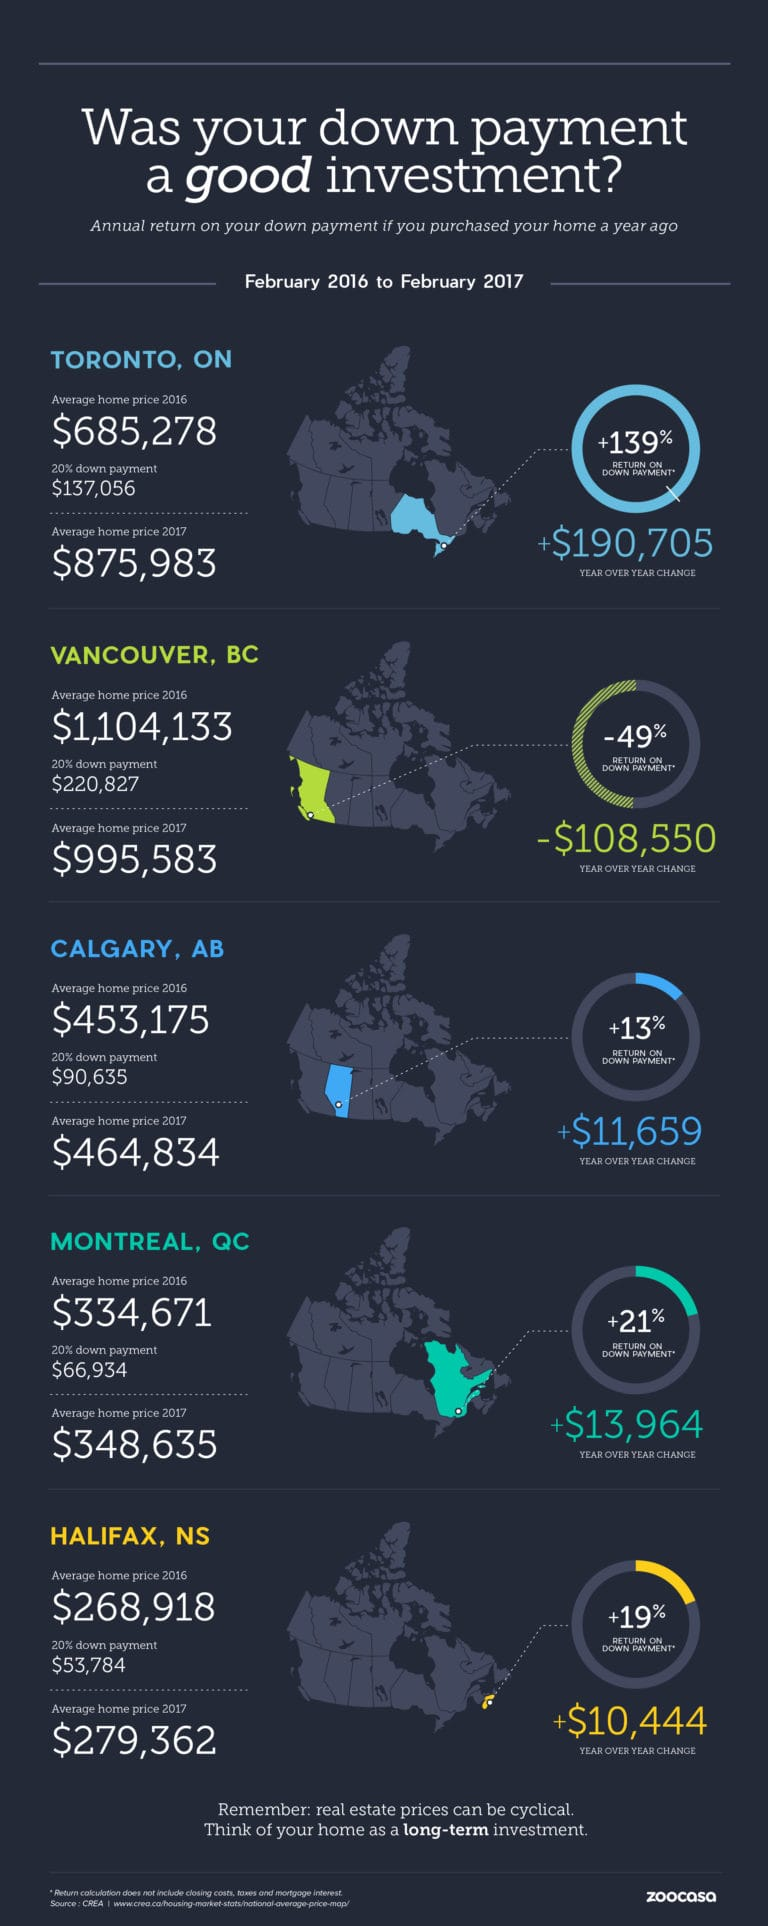 crea-downpayment-infographic-february-2017